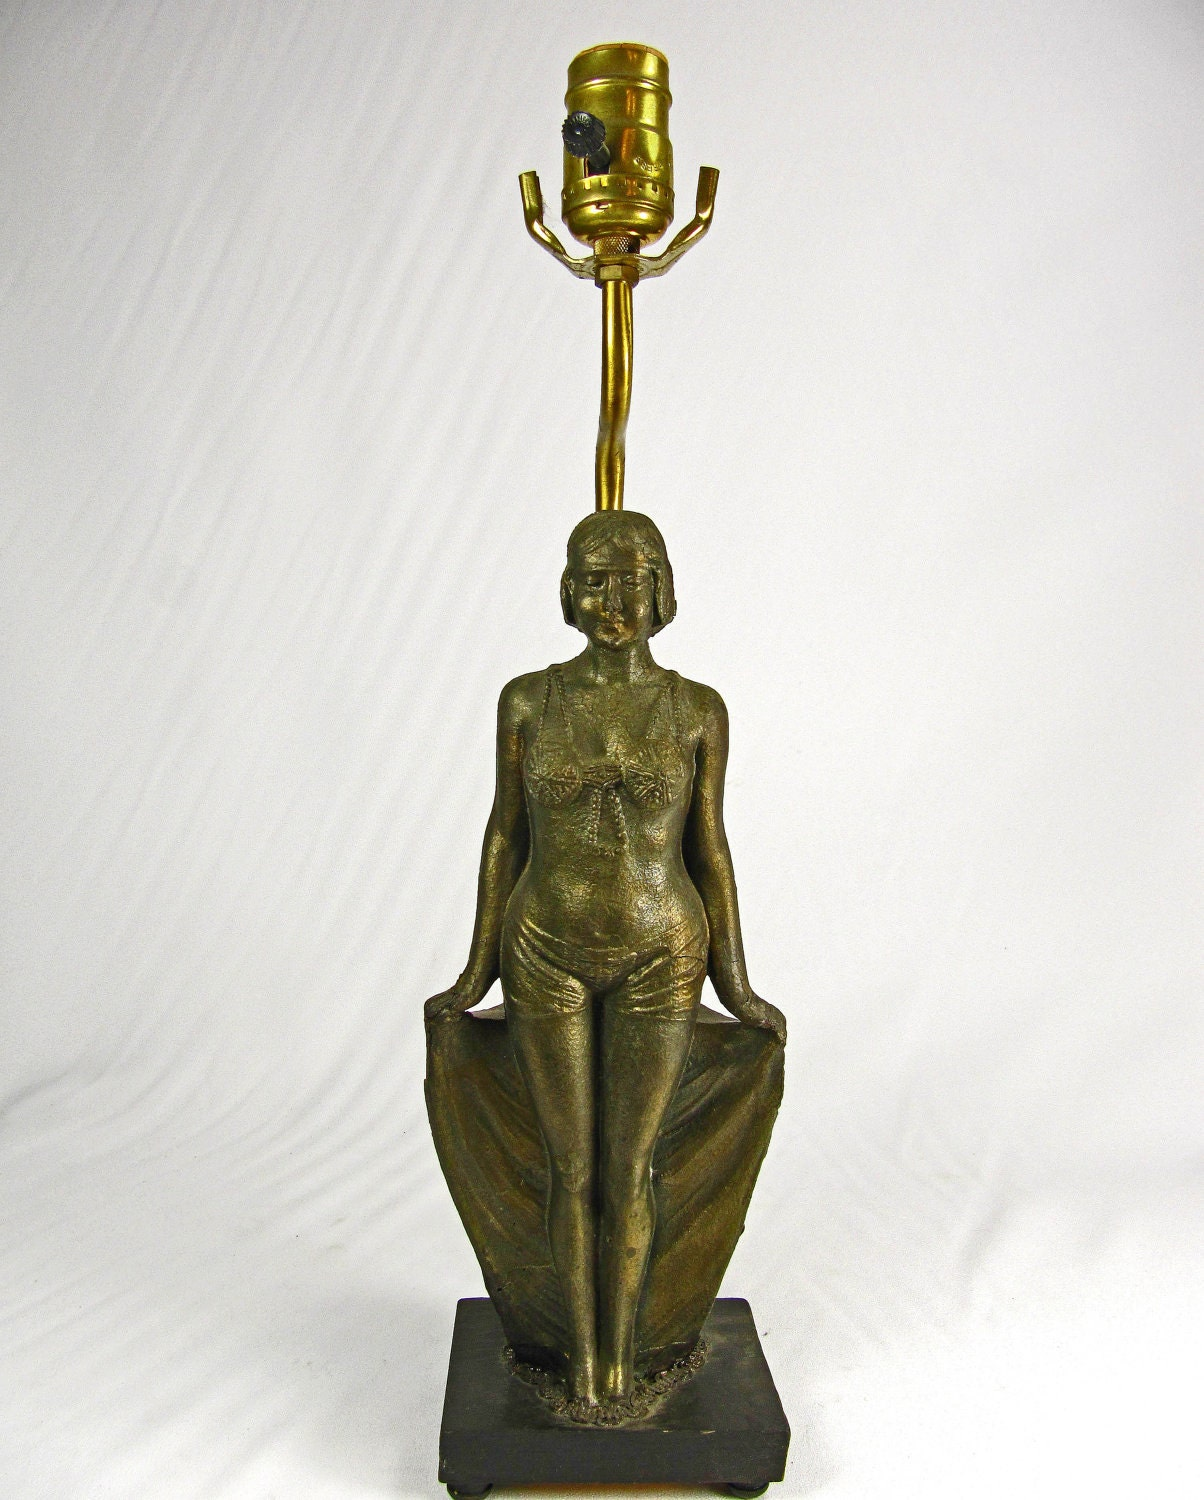 Table Lamp 1920s Vintage Art Deco Lady Figure Brass